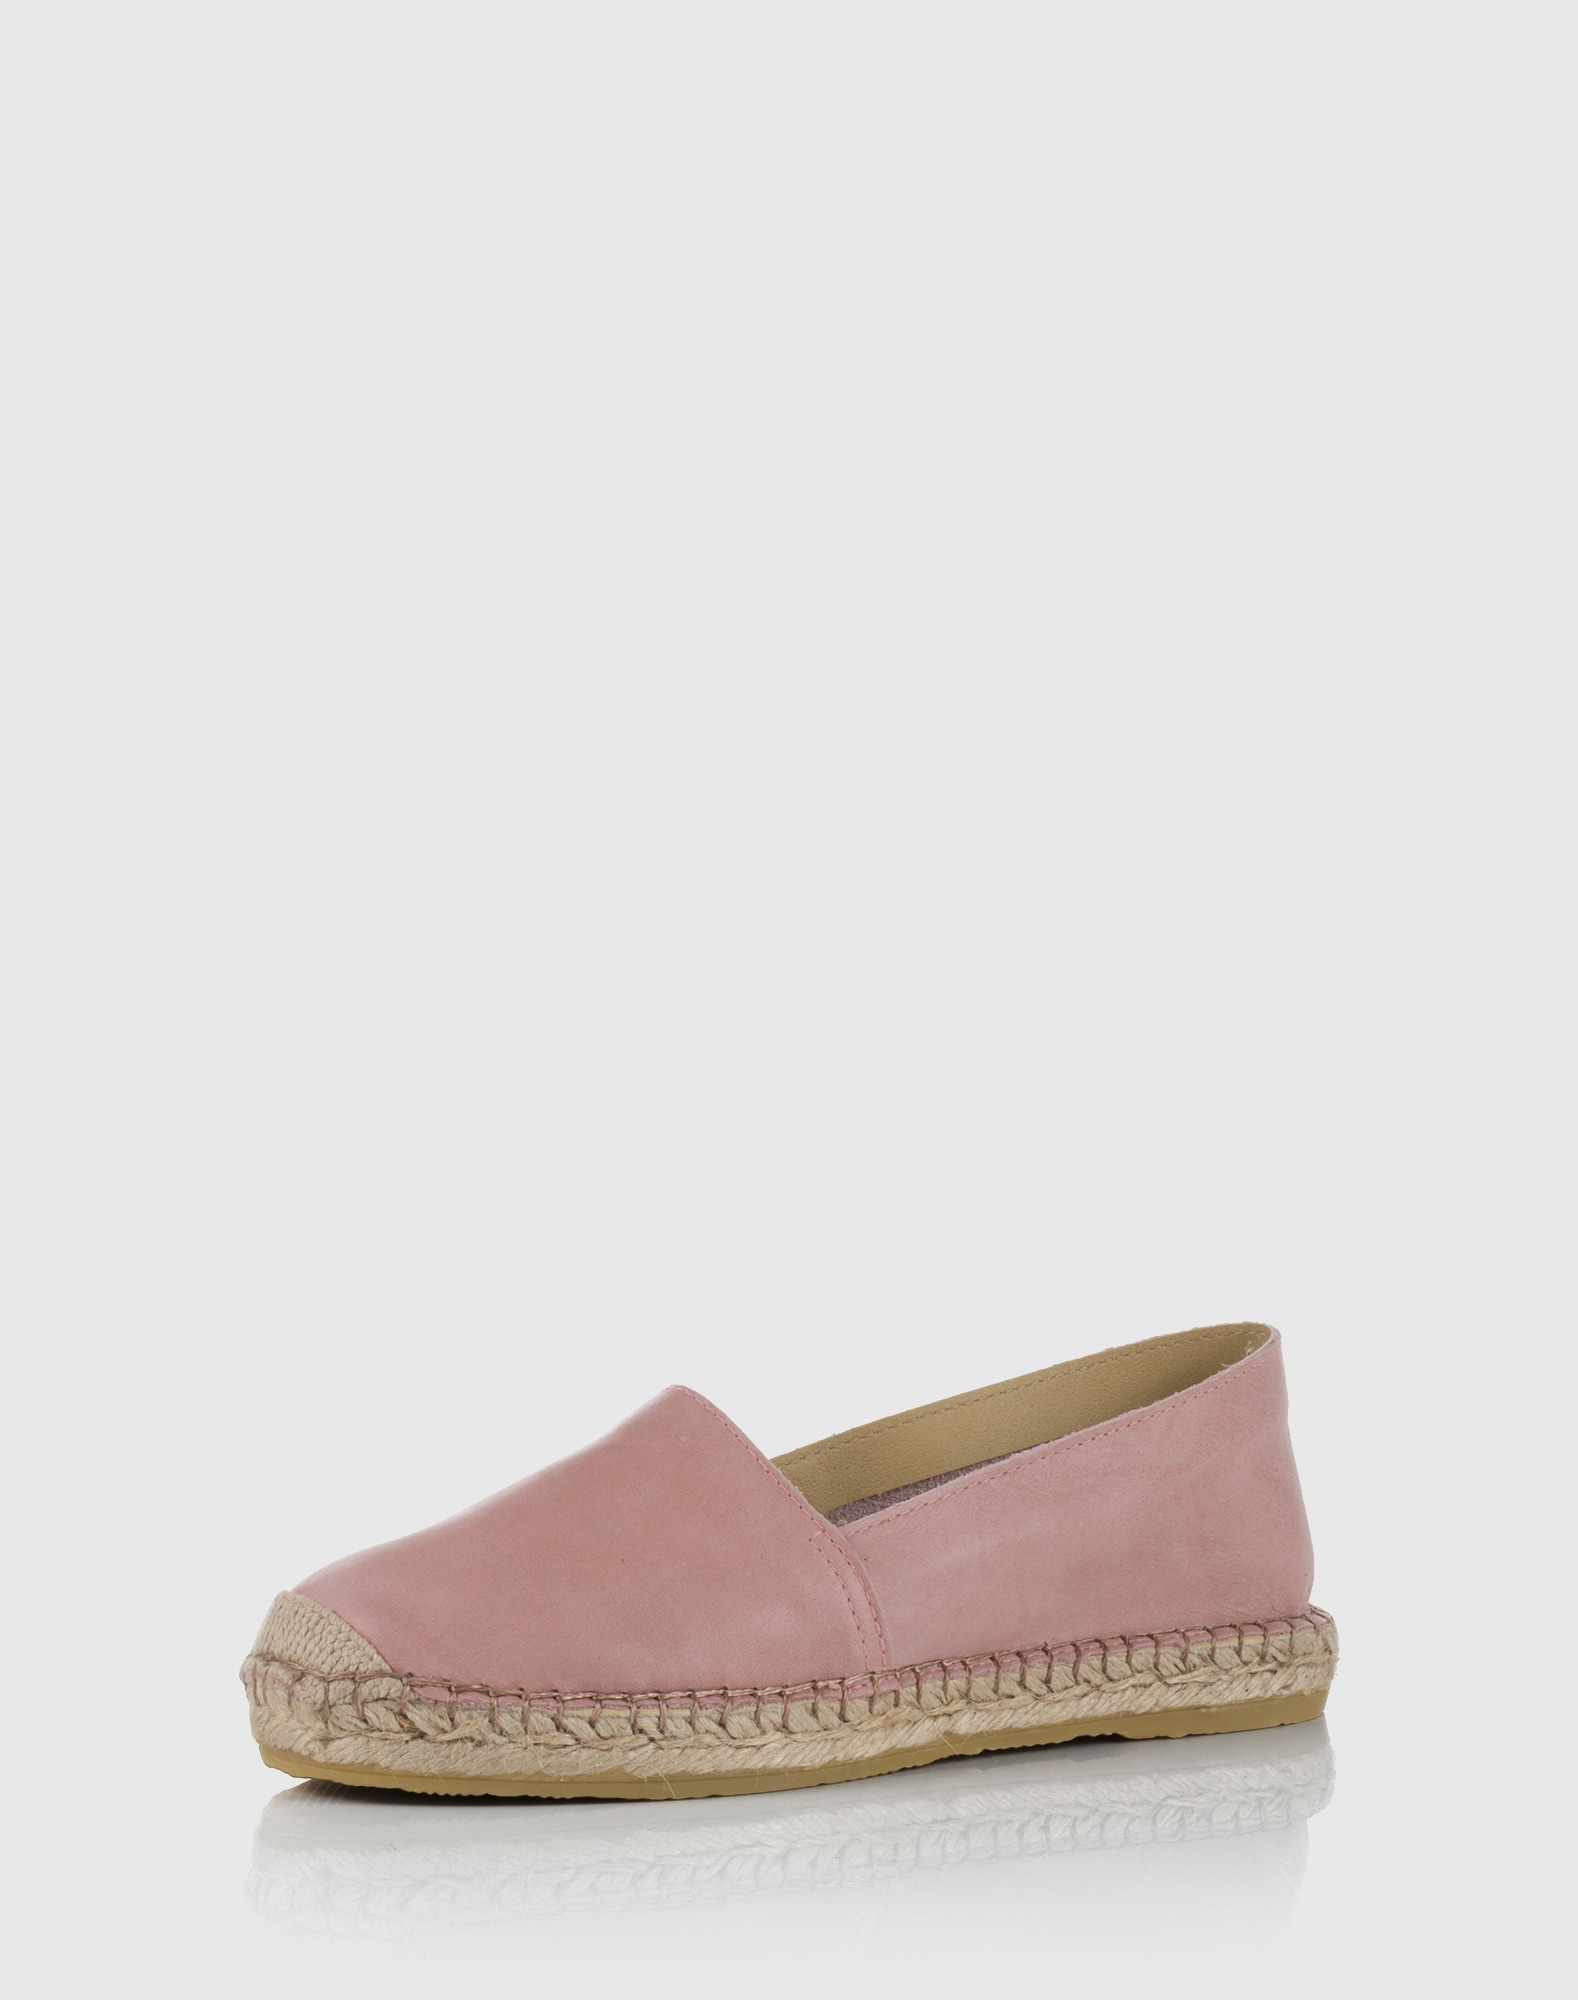 PAVEMENT, Dames Espadrilles, rose